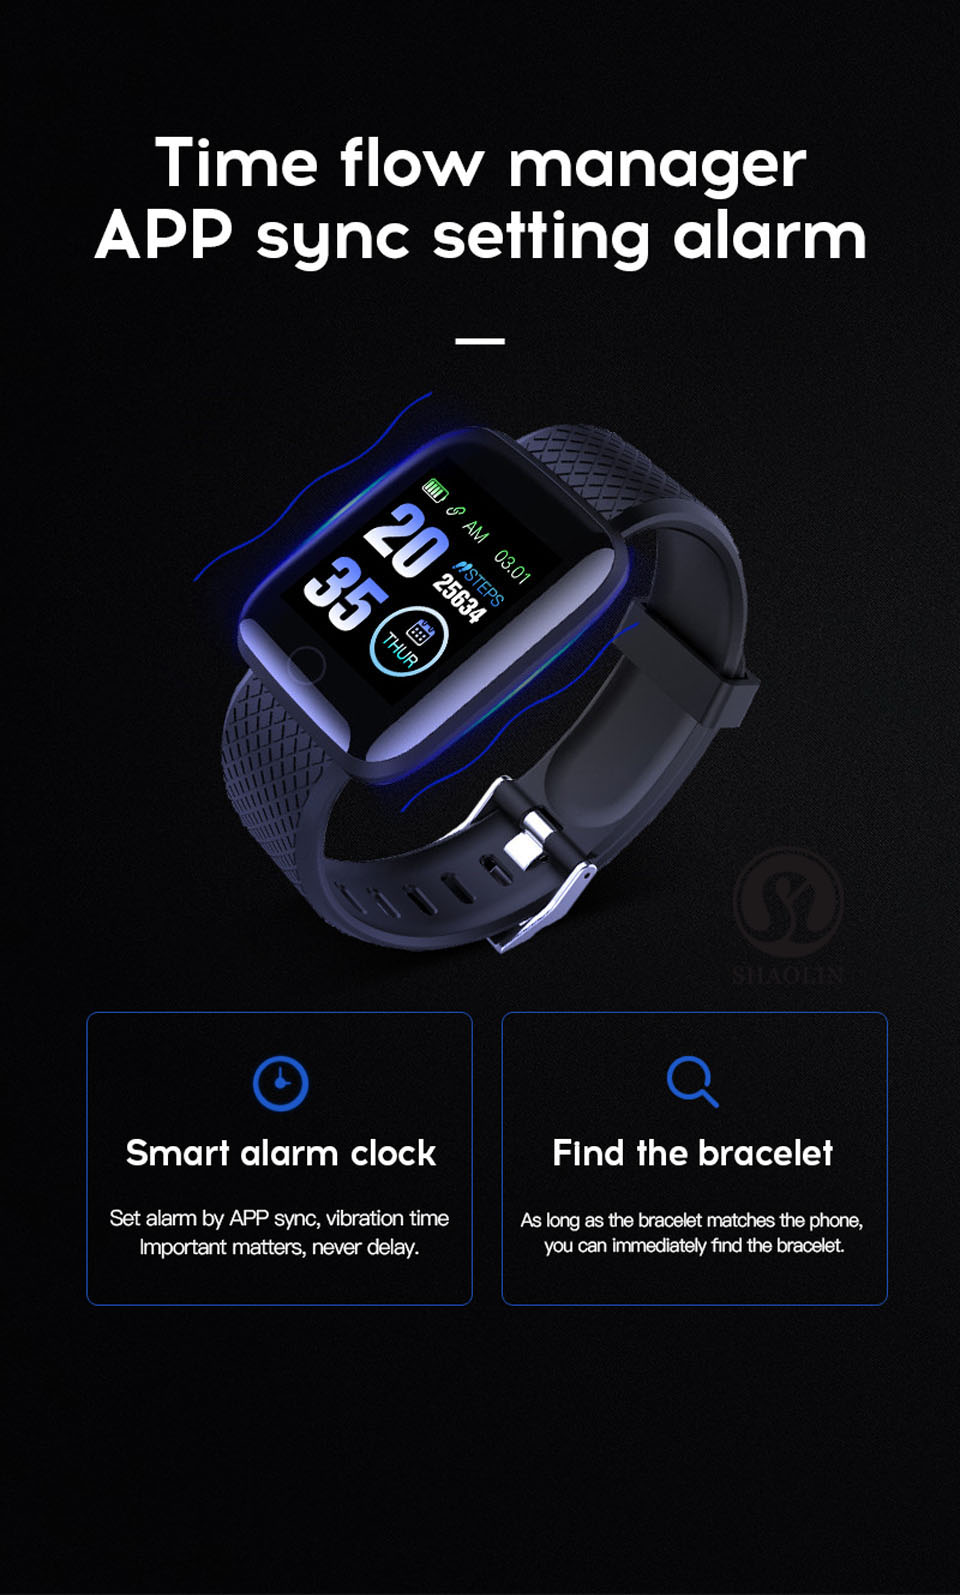 9 Smart Alarm Clock + Find The Bracelet